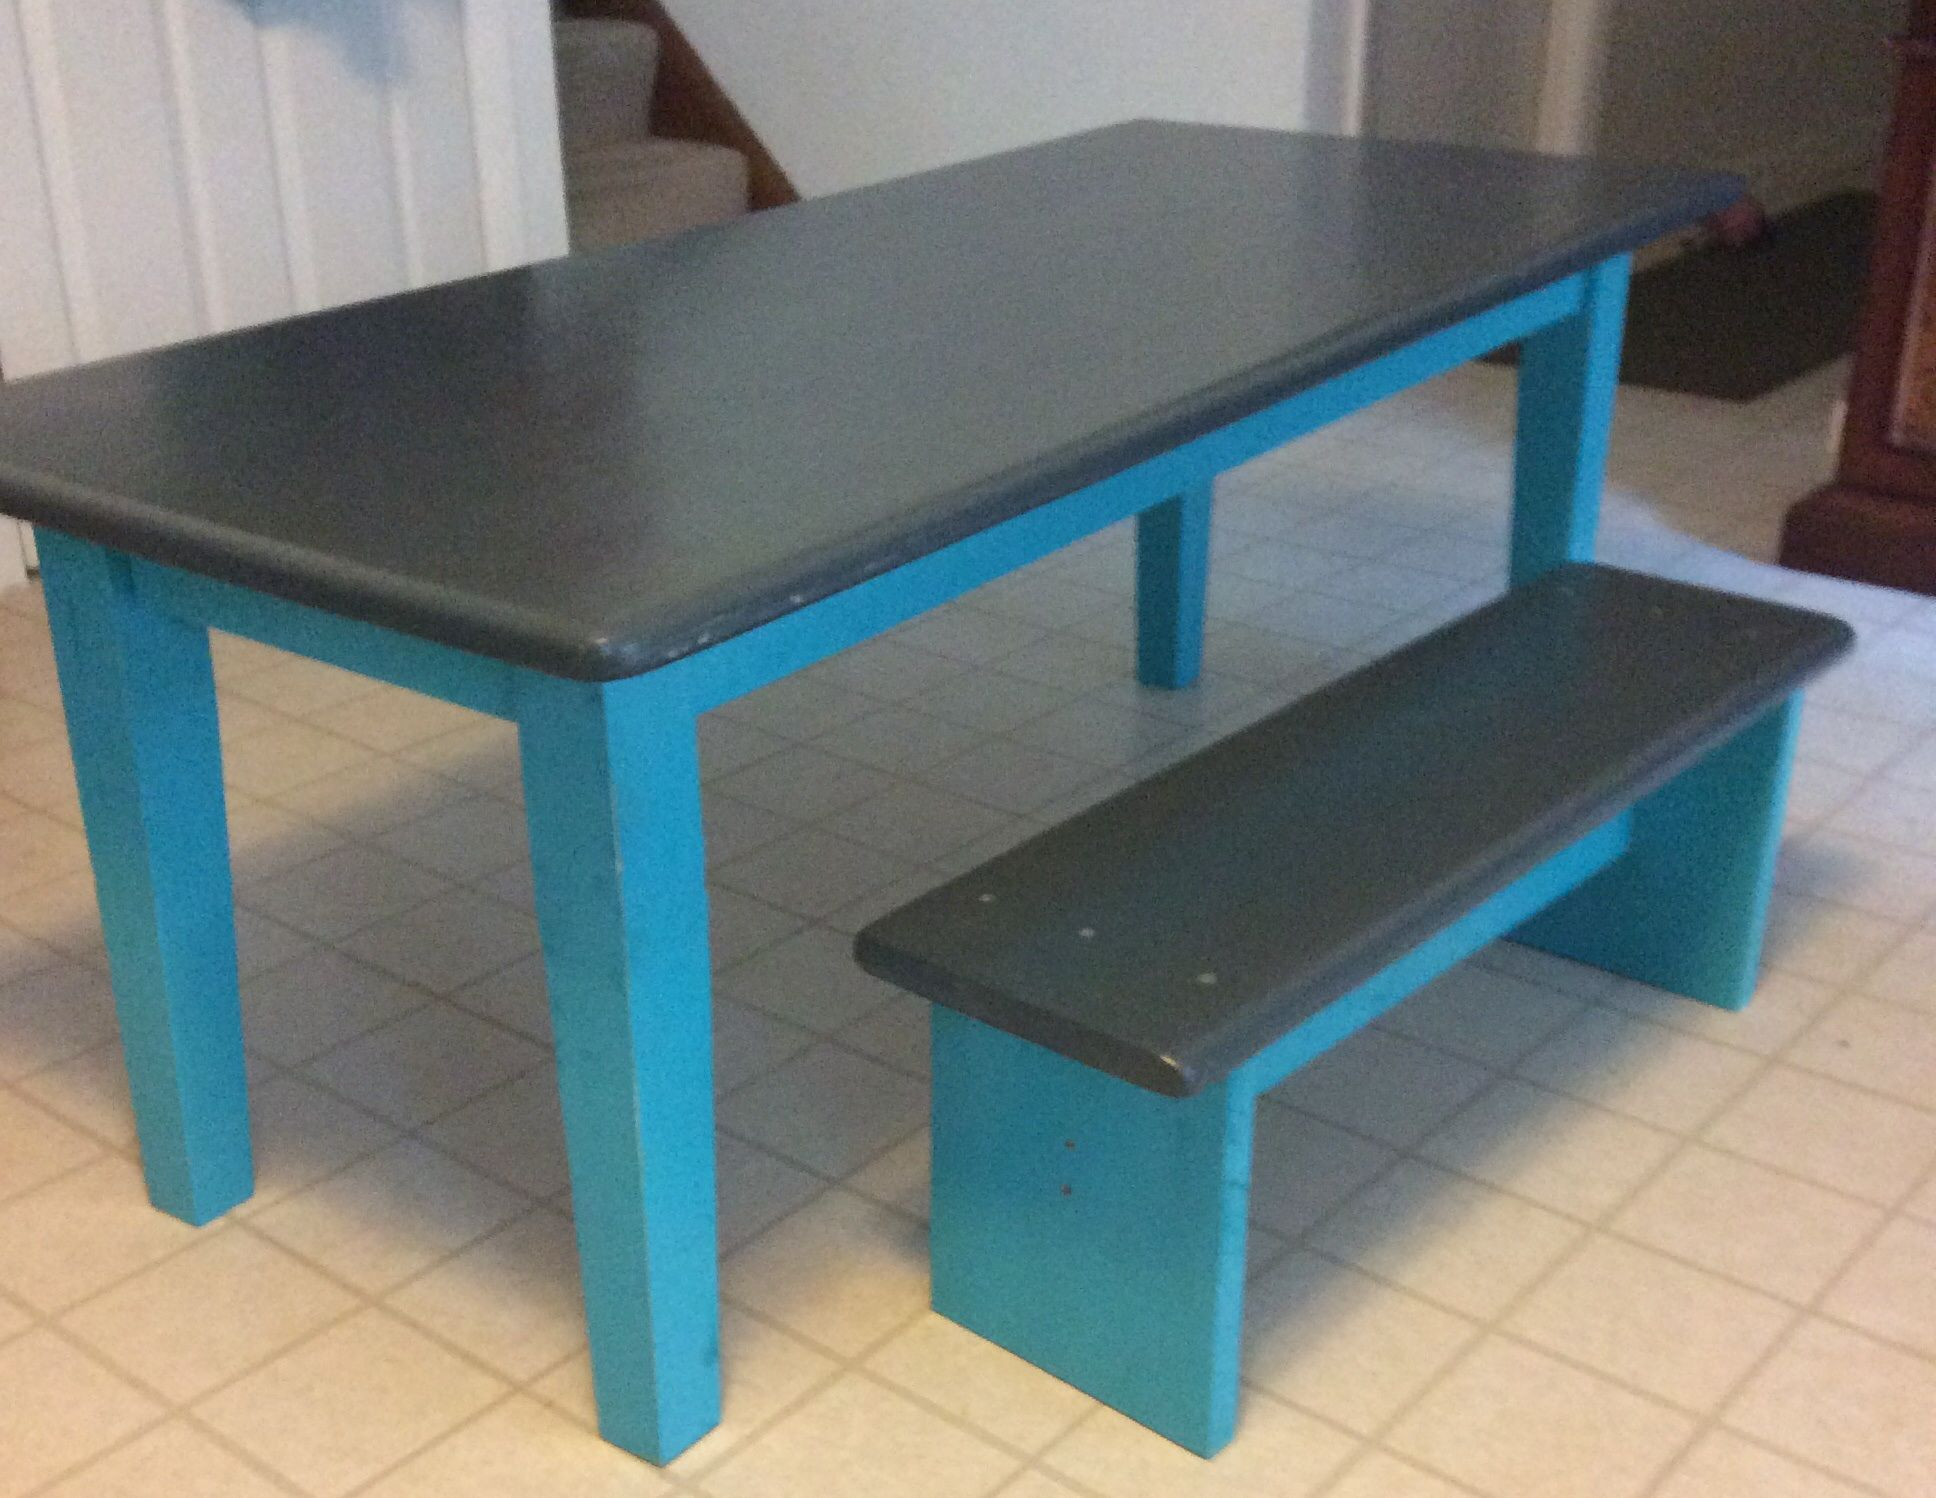 Recycled kitchen table to new play table for the kids! The brightest ...